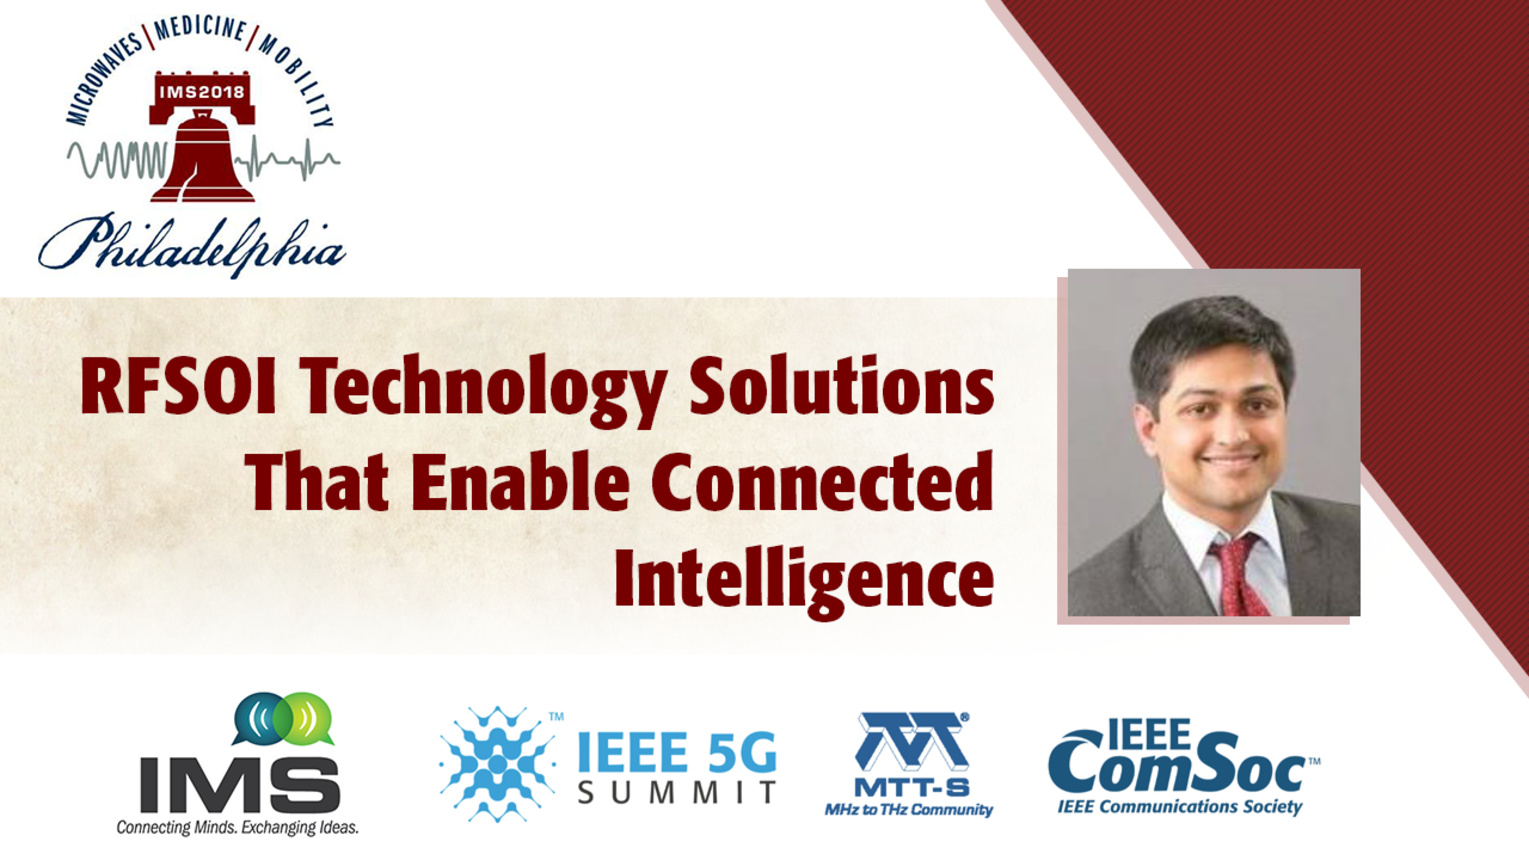 'RFSOI Technology solutions that enable Connected Intelligence through a Complete 5G Platform Solution'